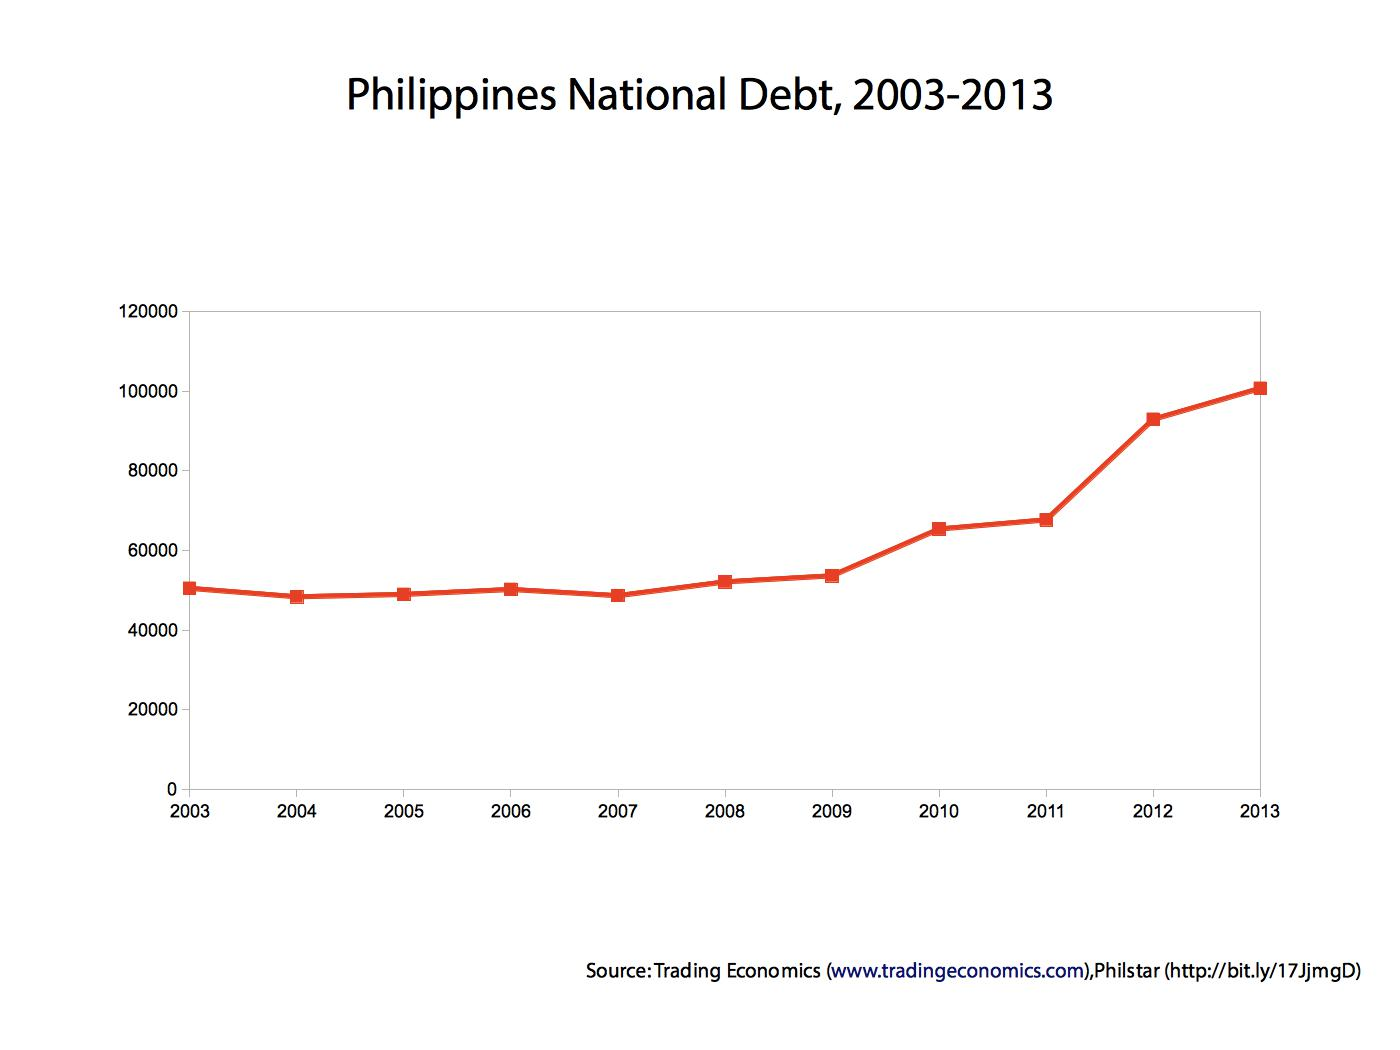 National Debt According To Different Sources In Billion Usd